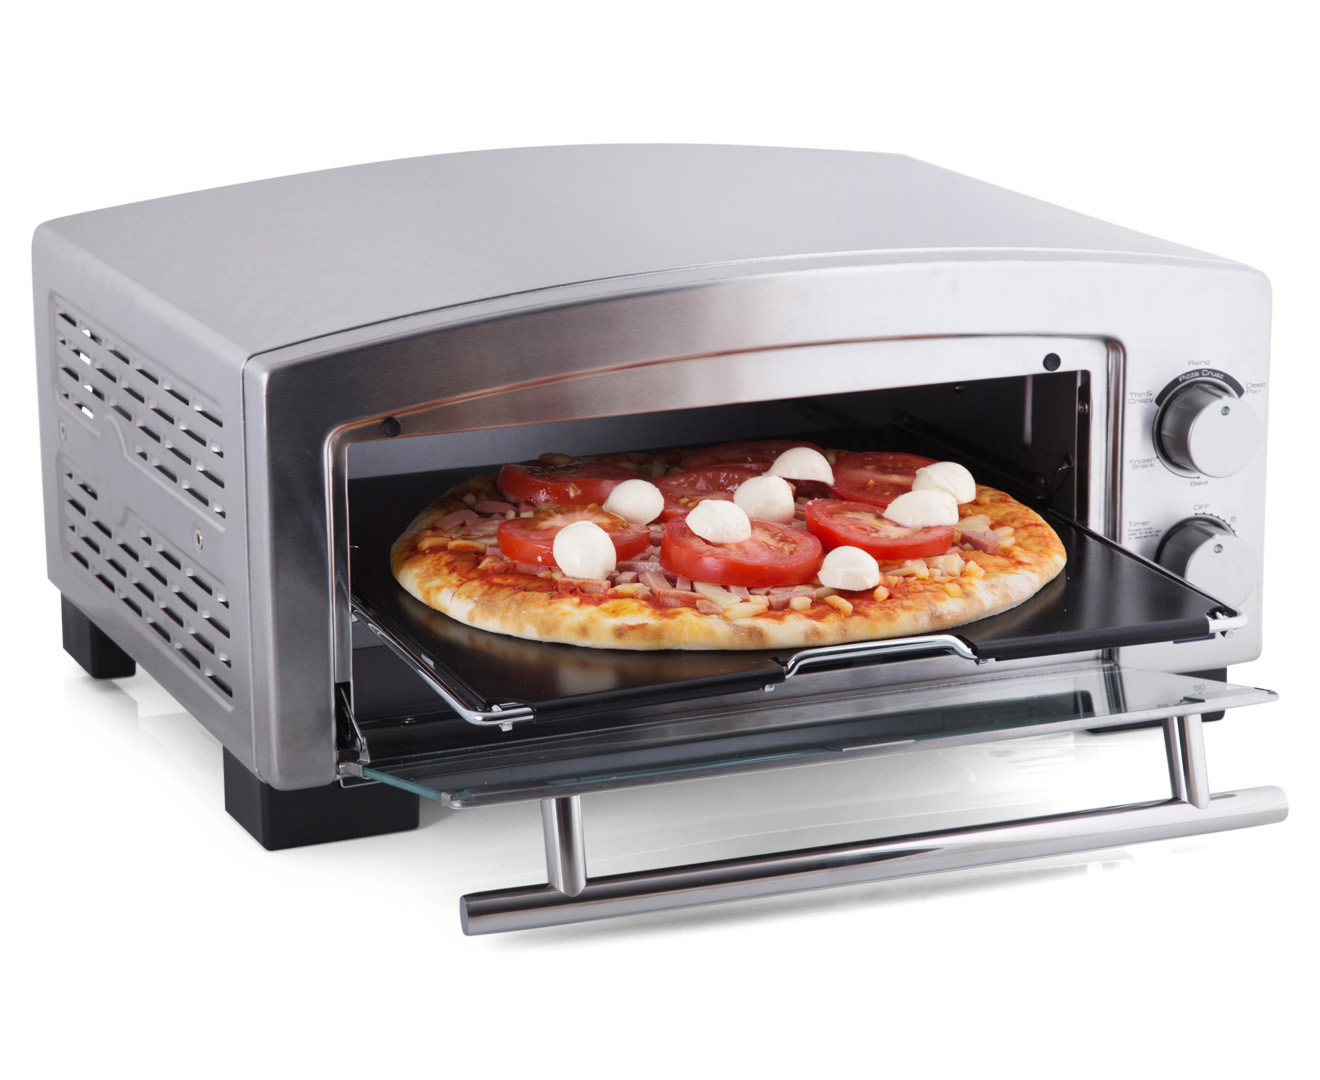 Russell Hobbs 5 Minute Pizza Amp Snack Oven Ebay